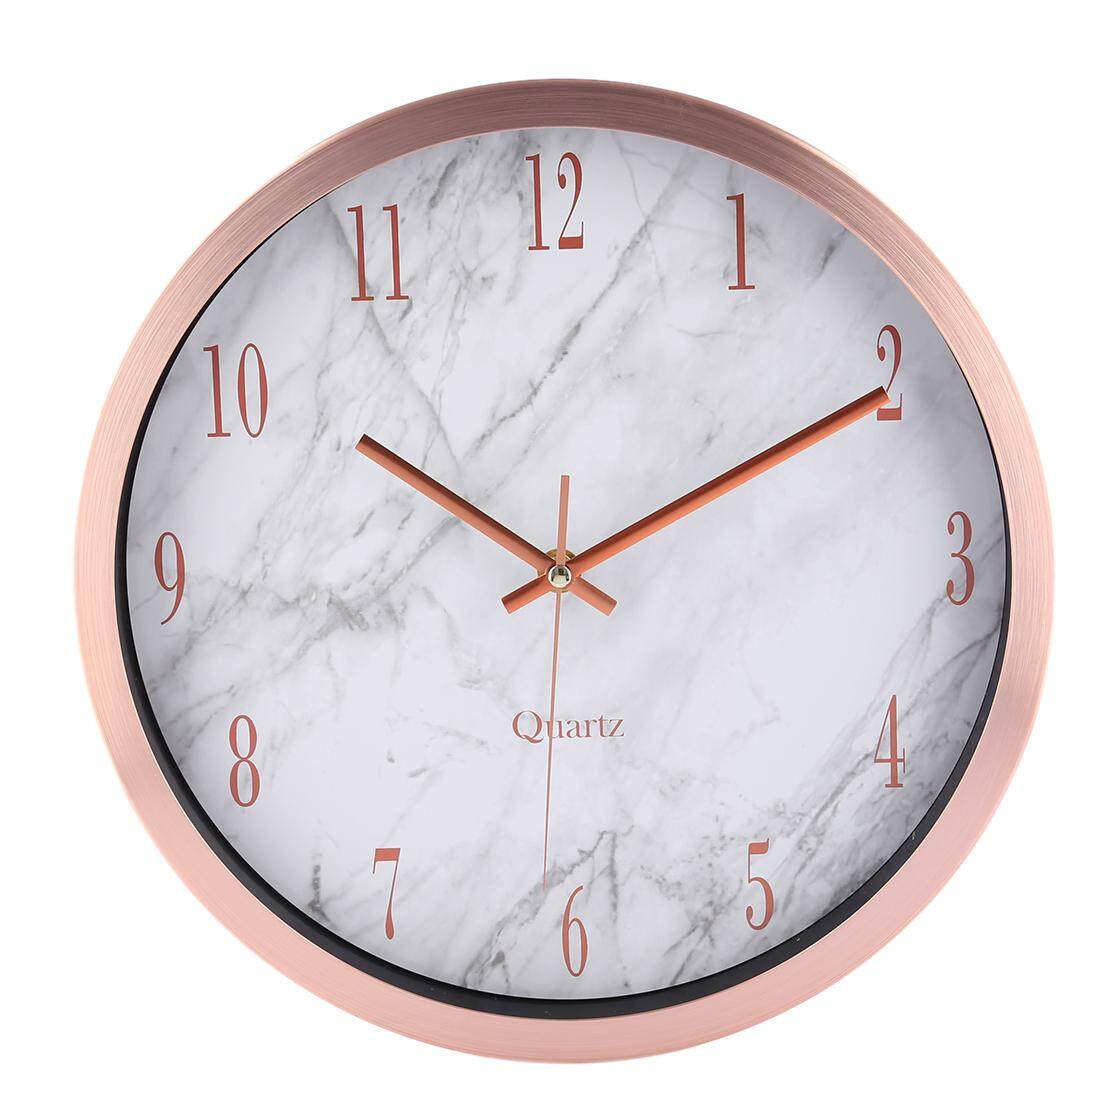 360DSC Marbling Design Round Aluminum Alloy Frame Wall Clock Household Office Mute Clock Wall Decor - Rose Gold - intl